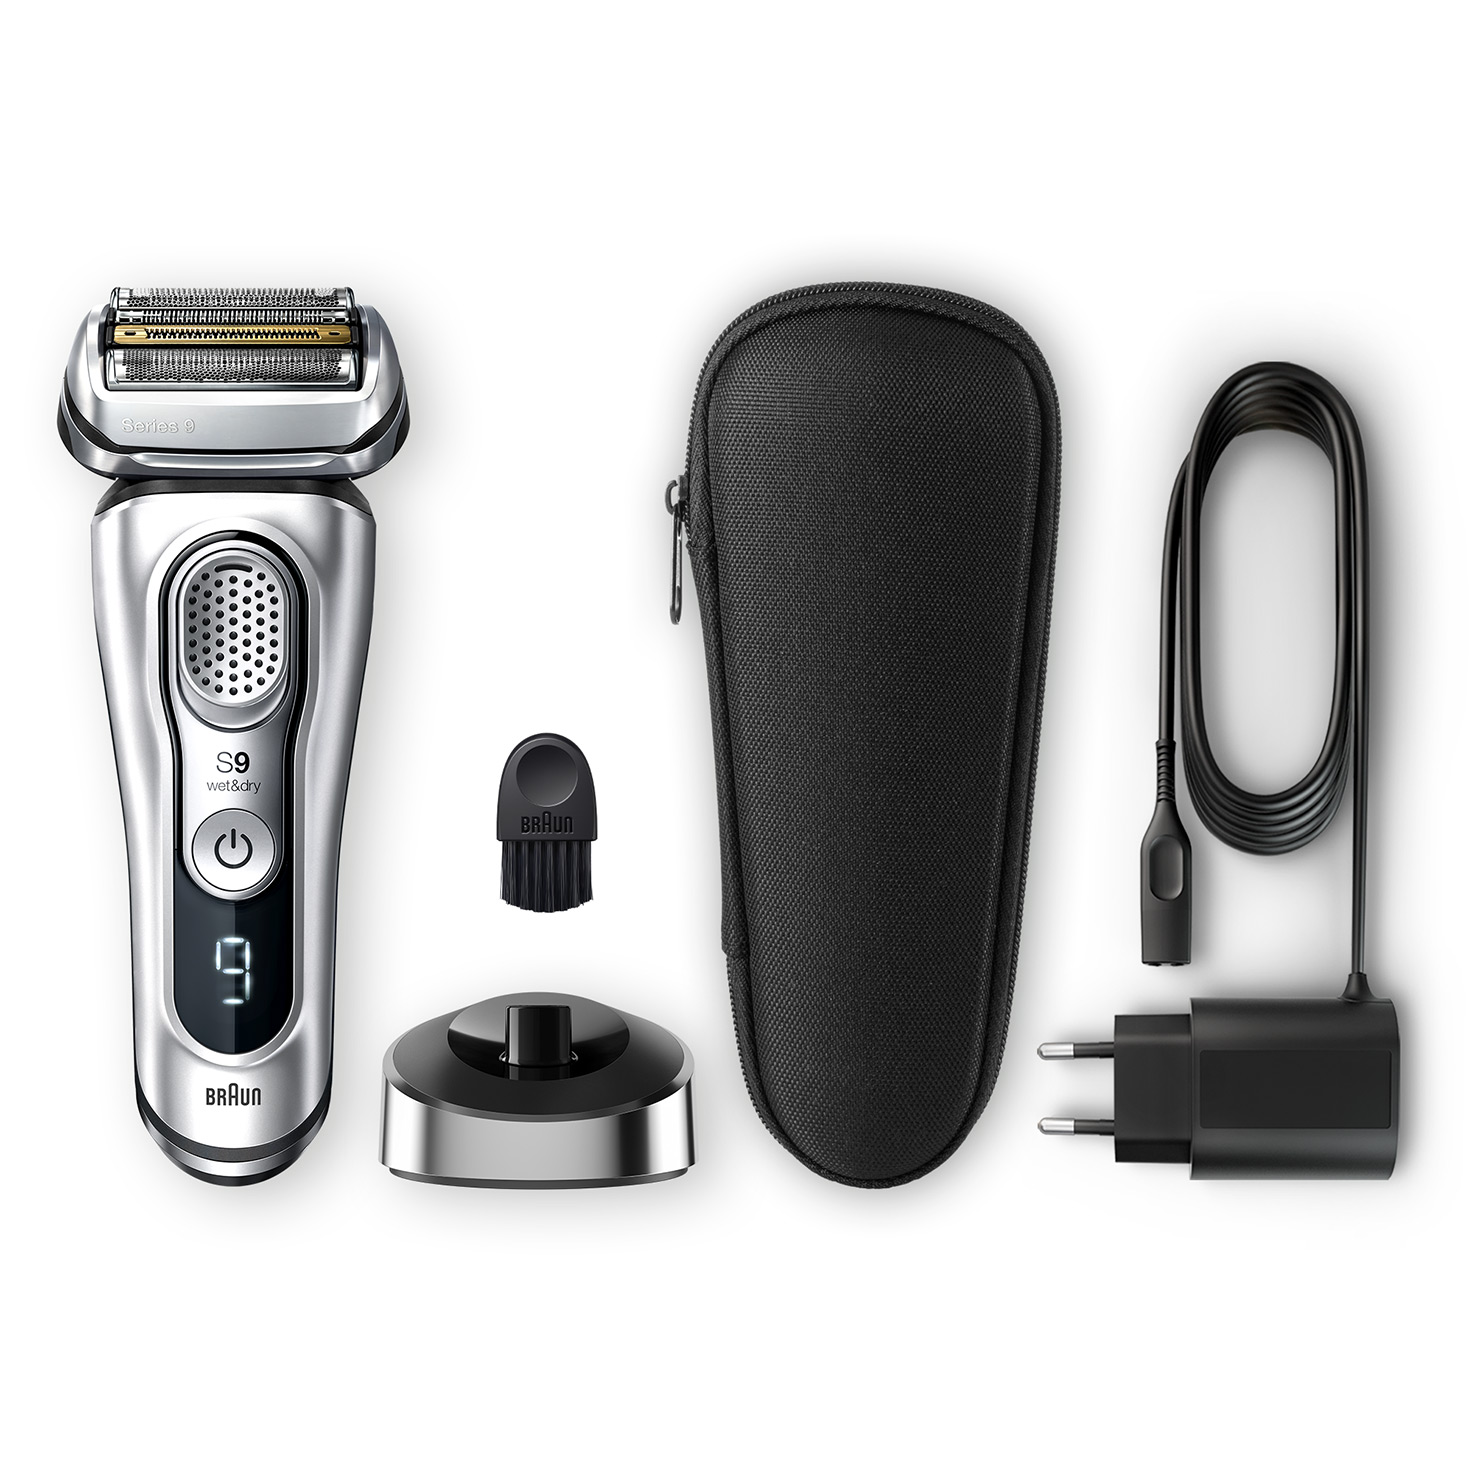 Series 9 9330s shaver - What´s in the box